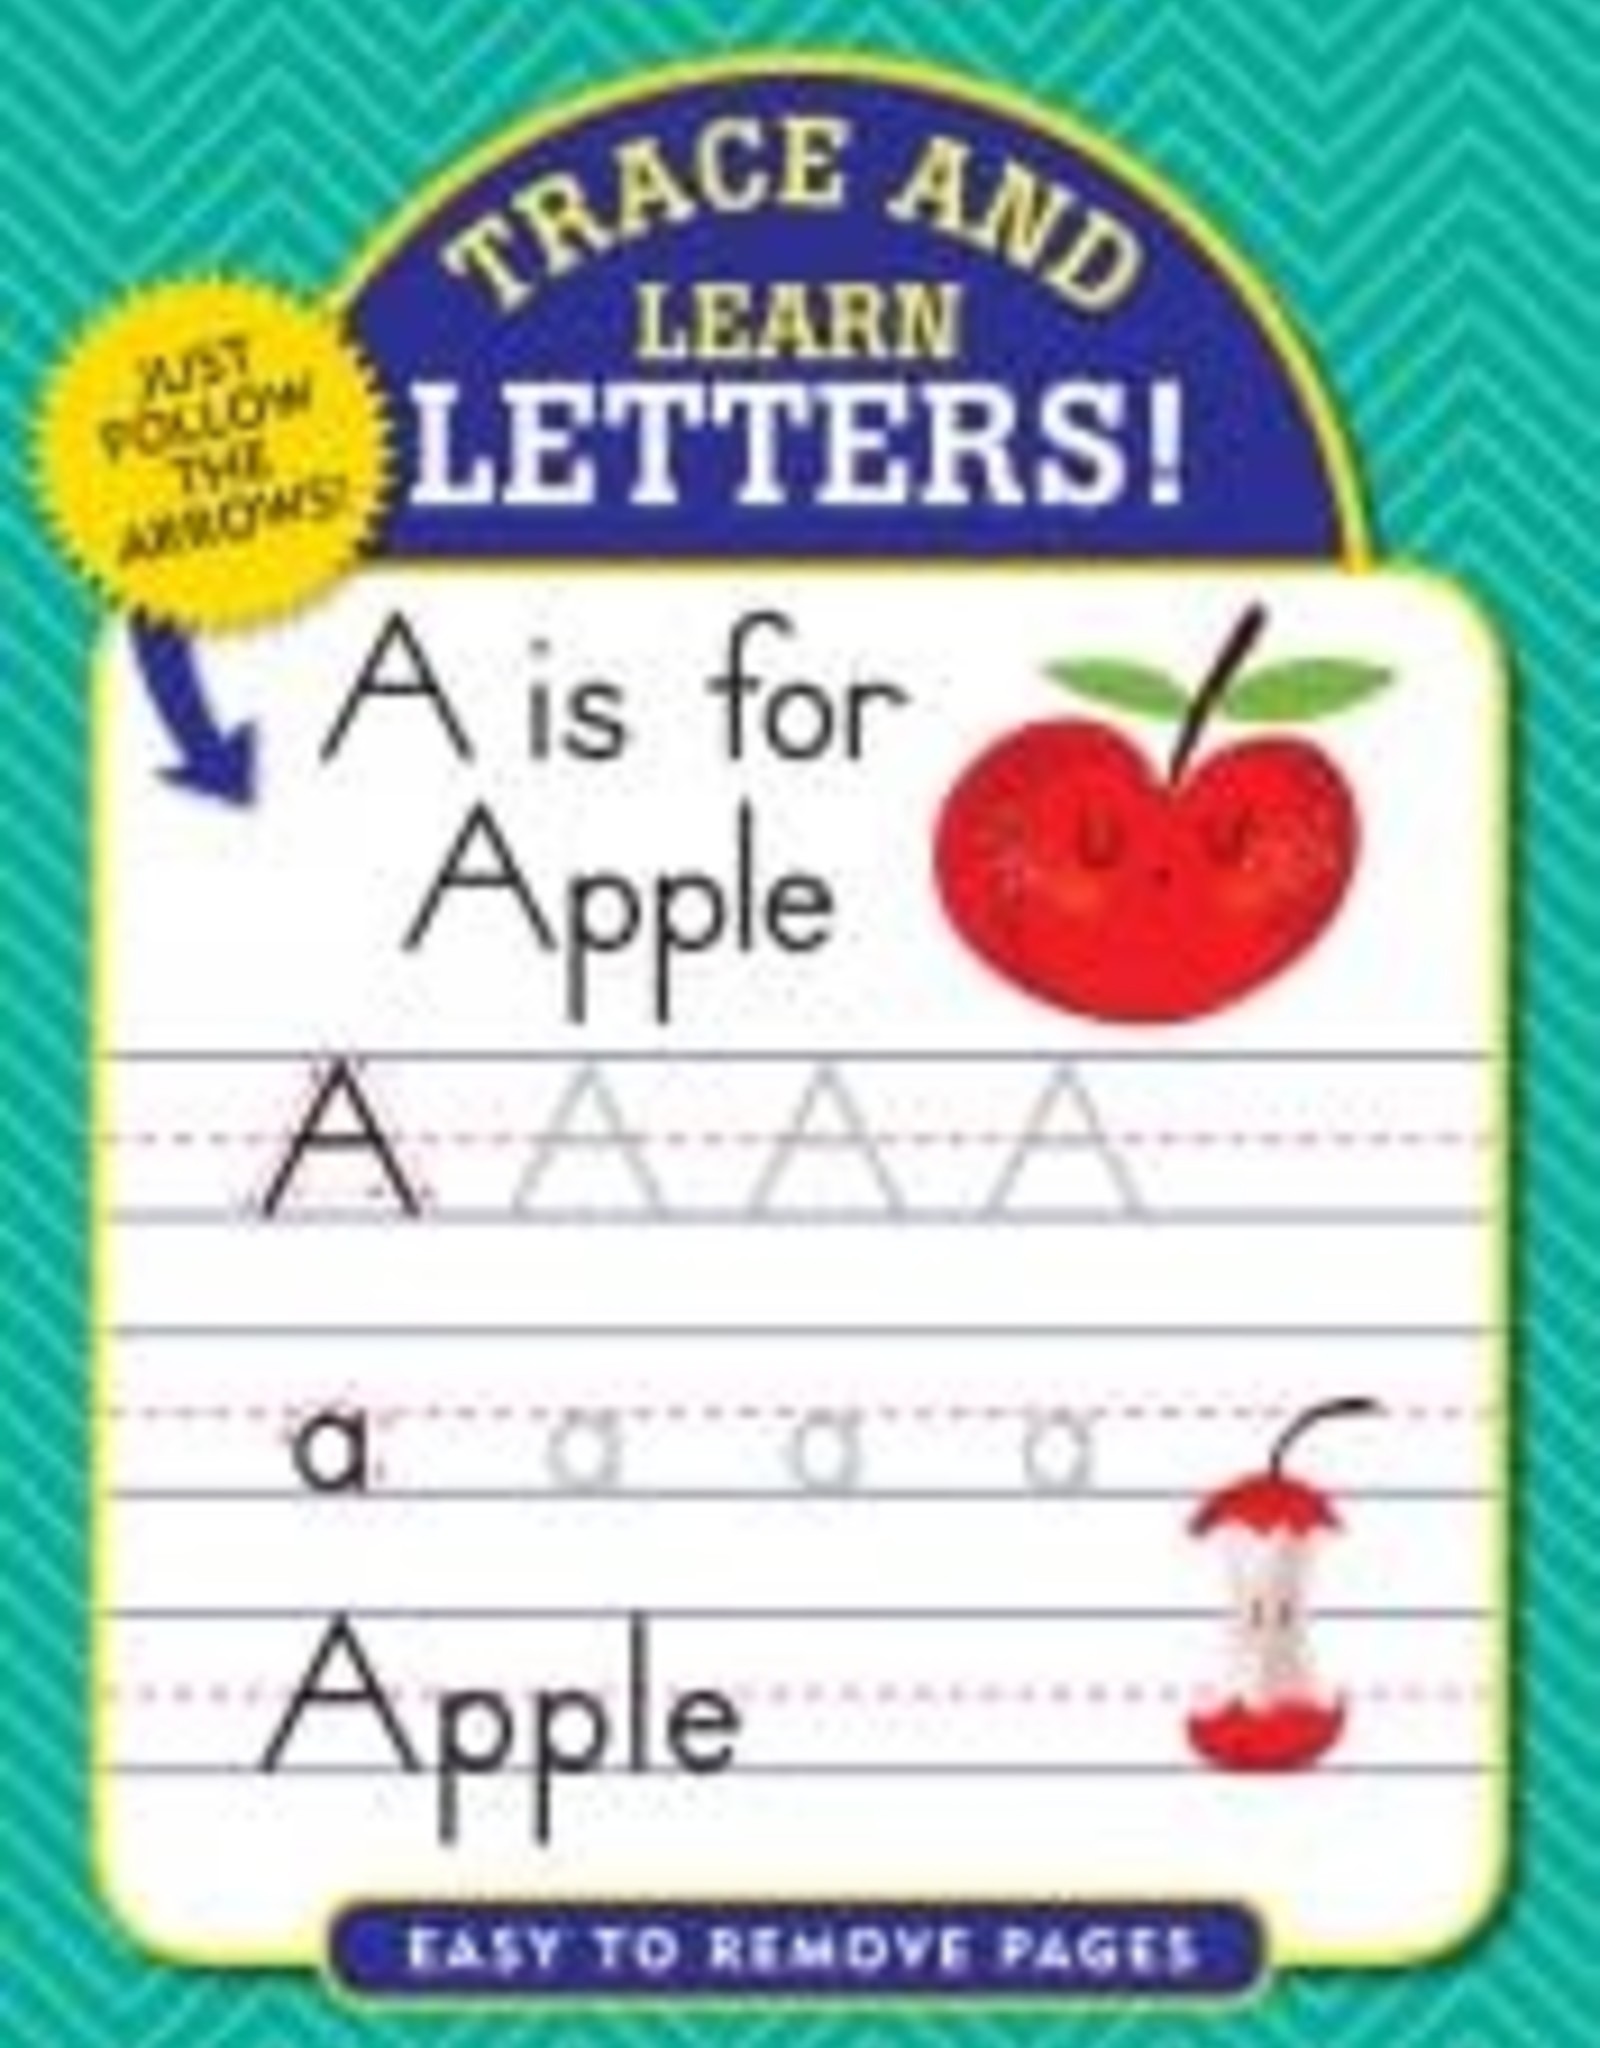 Peter Pauper Press TRACE & LEARN: LETTERS!